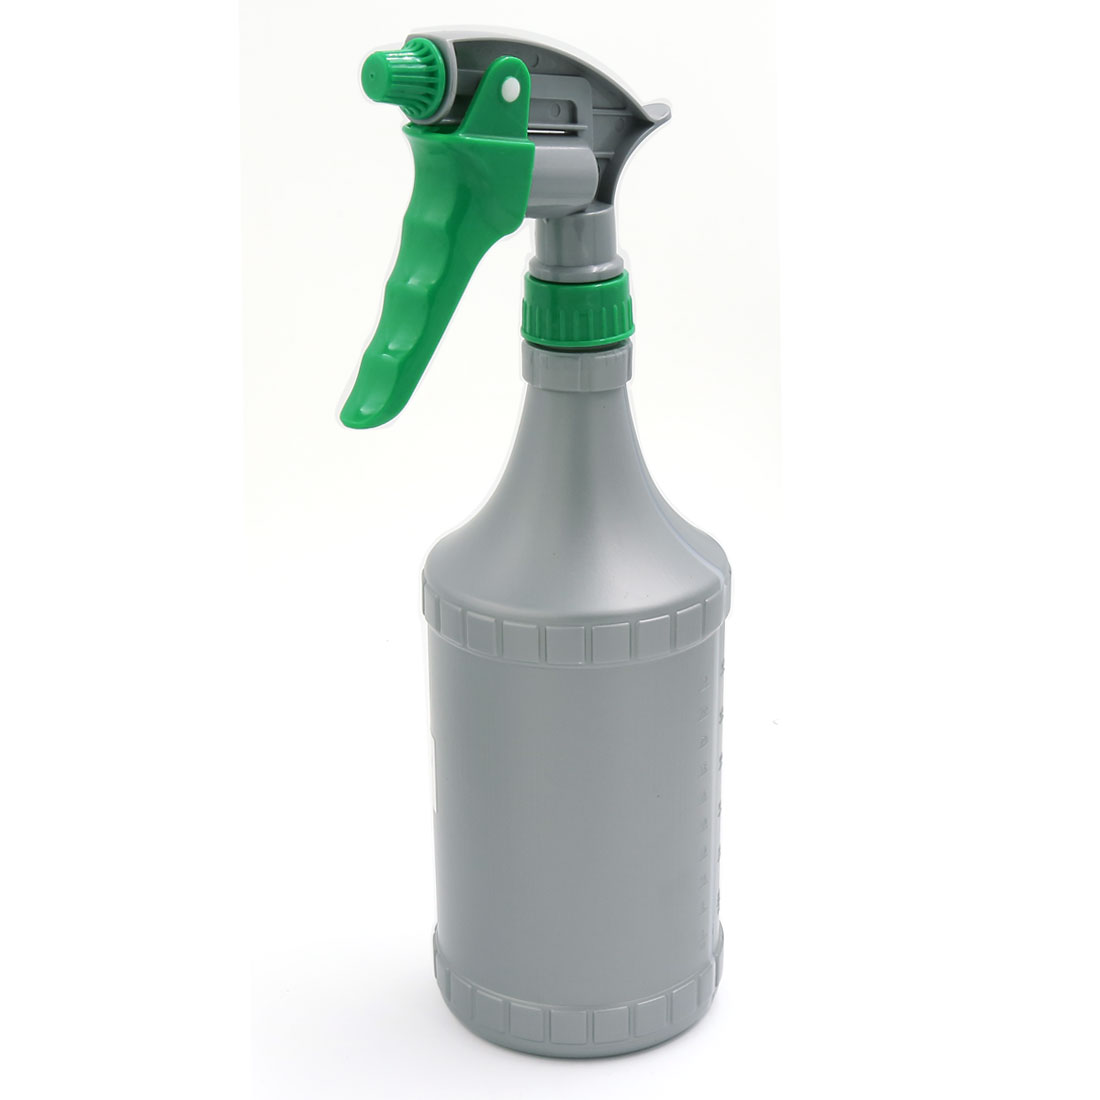 700ML Plastic Water Trigger Spray Sprayer Bottle Cleaning Tool Gray Green for Car Home